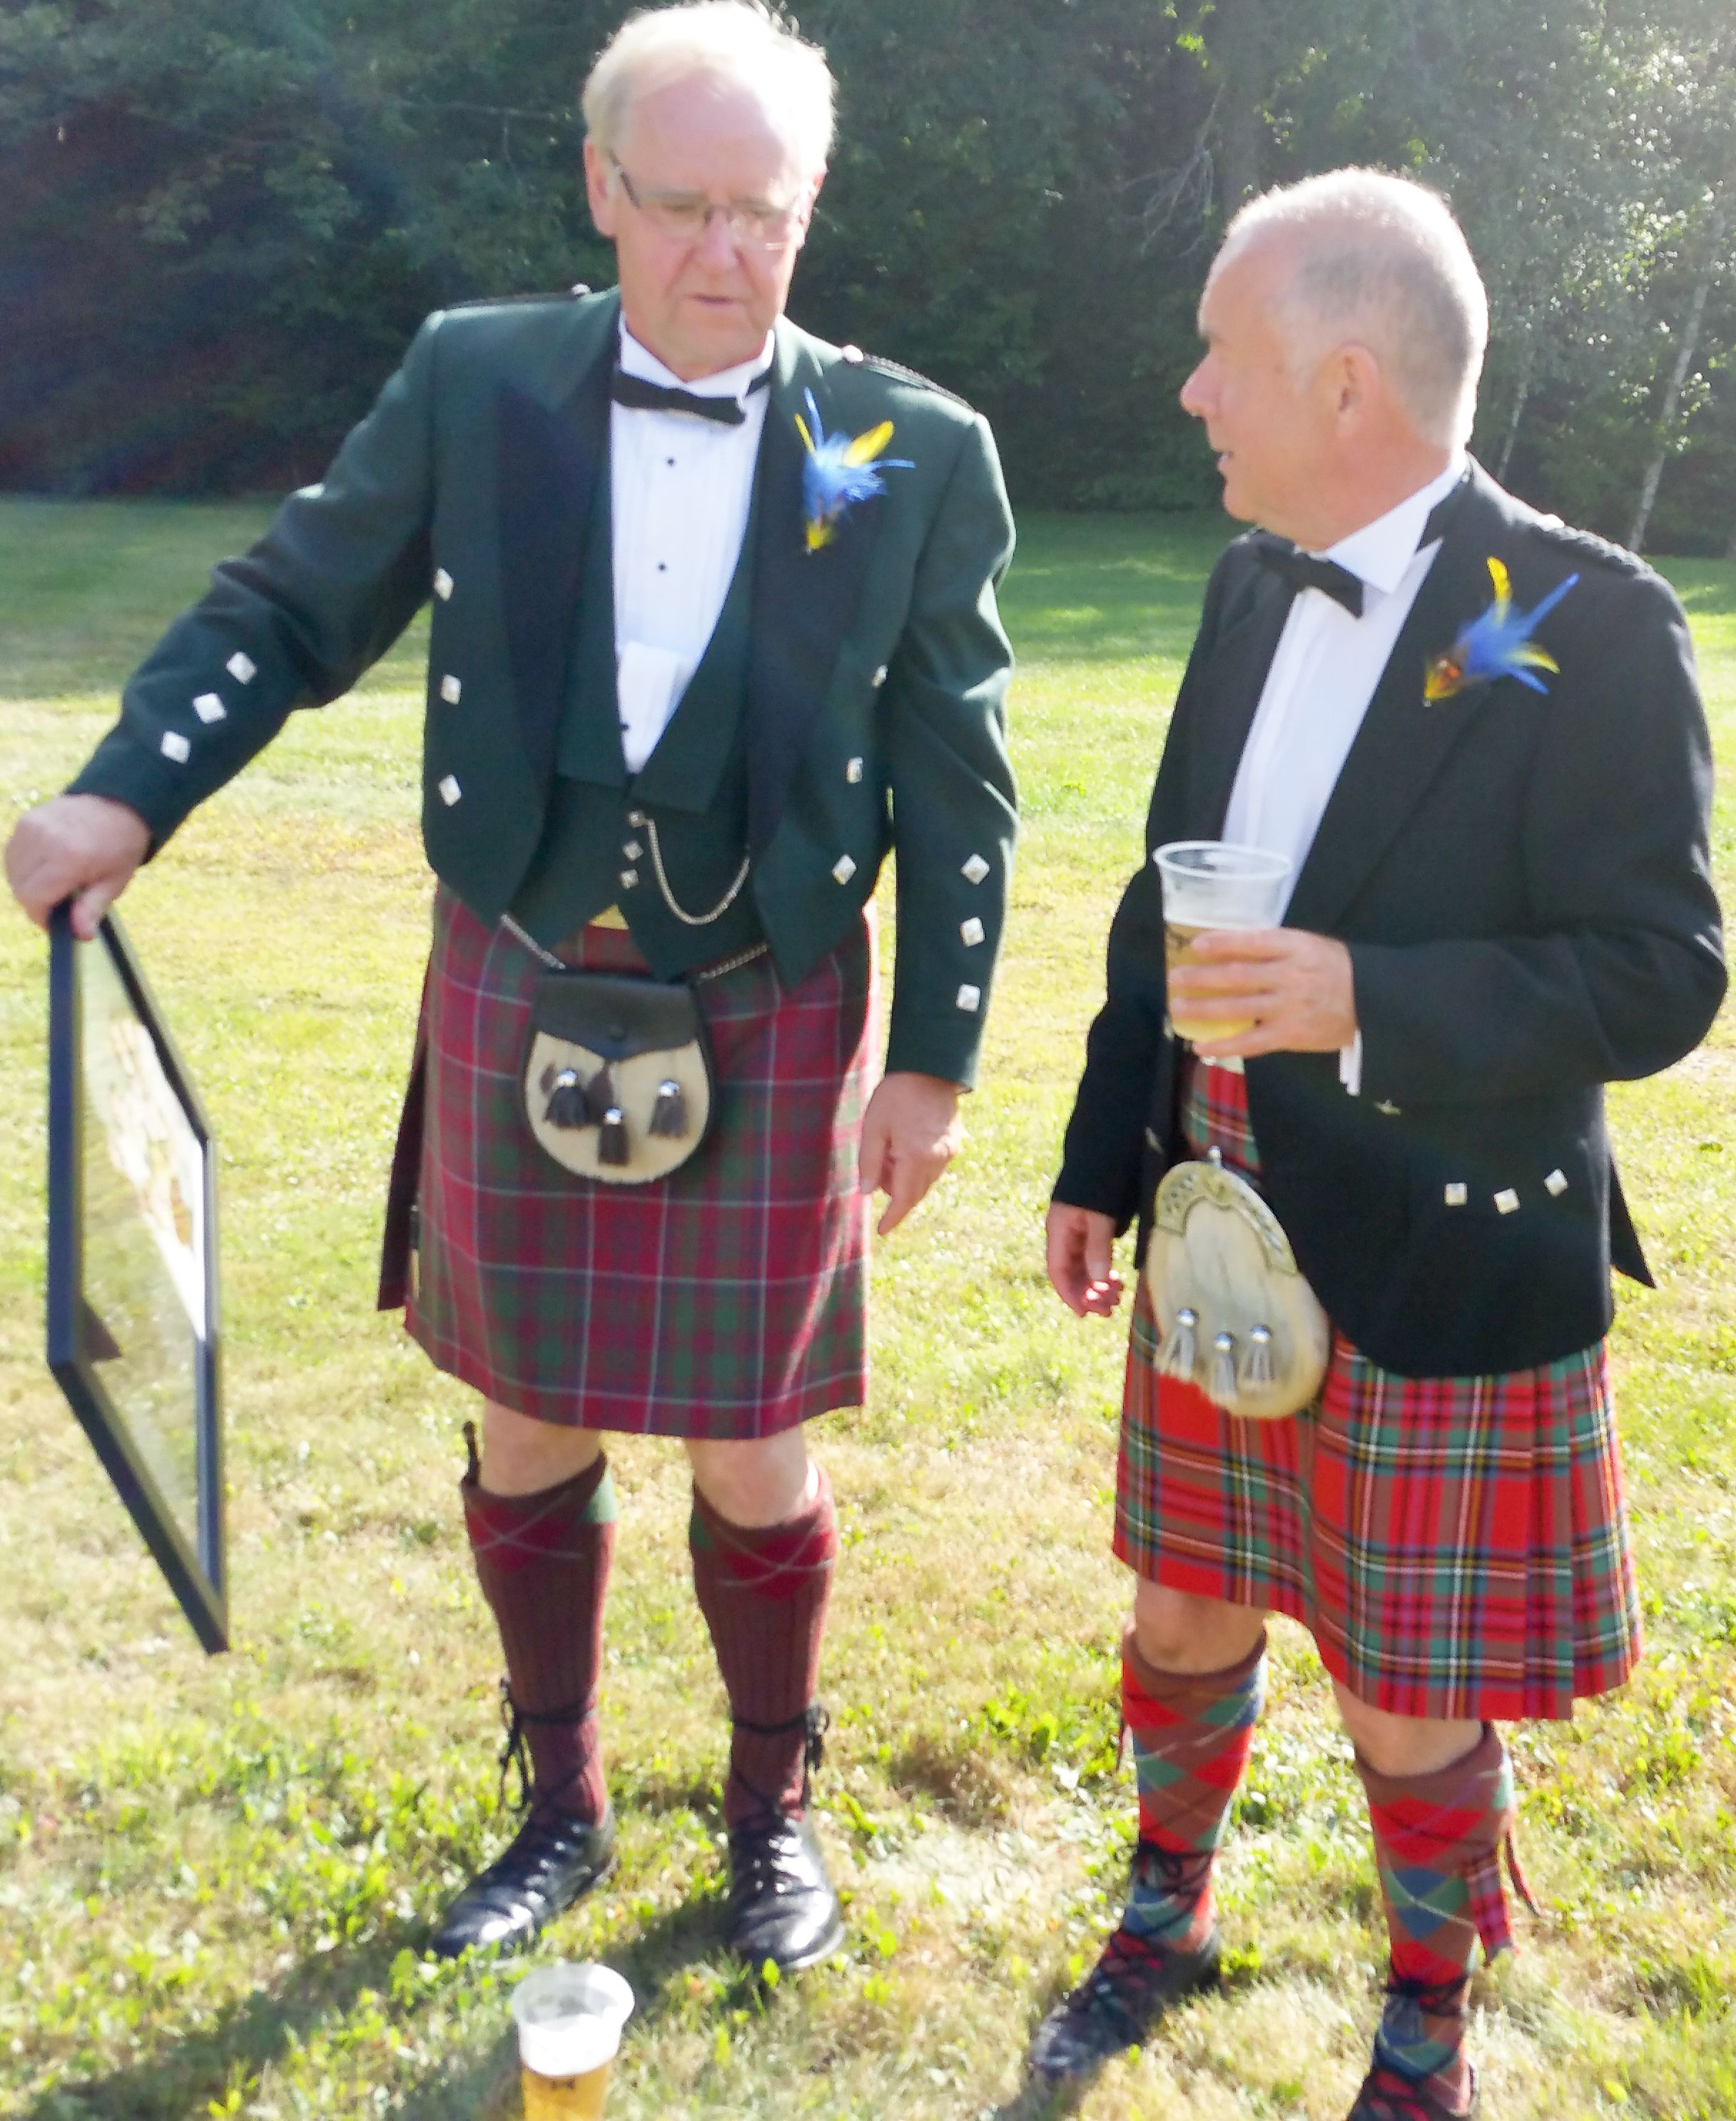 All you wanted to know about the kilt, but hesitate to ask